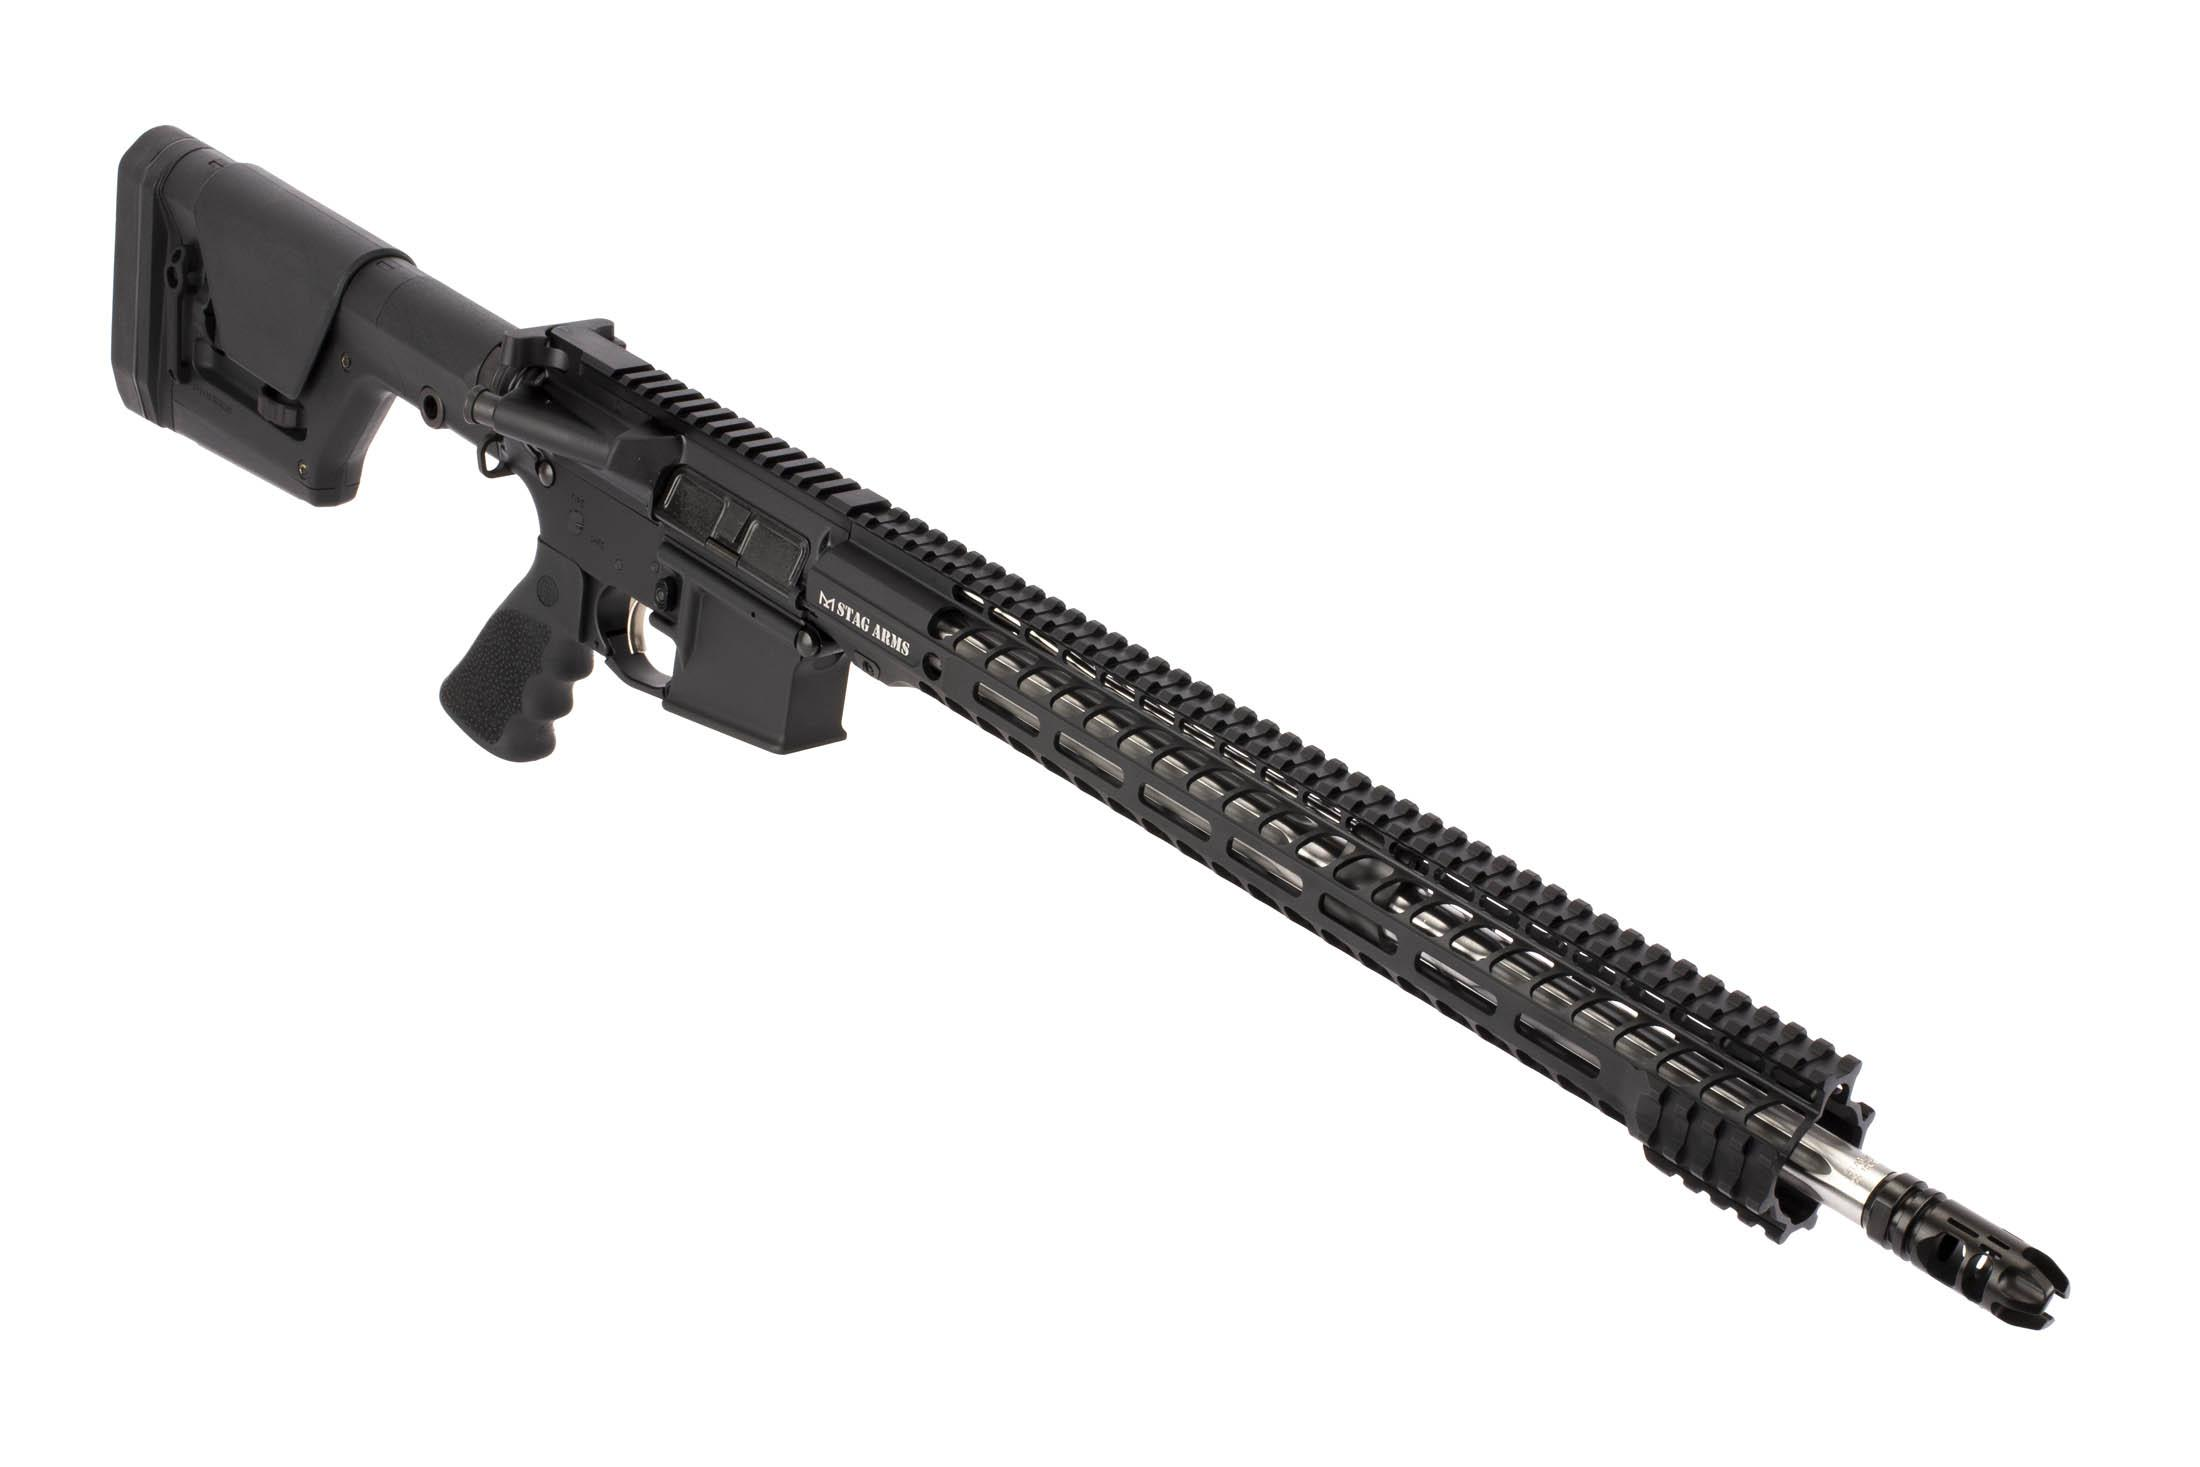 Stag Arms 18in .224 Valkyrie AR-15 rifle with mid-length gas system